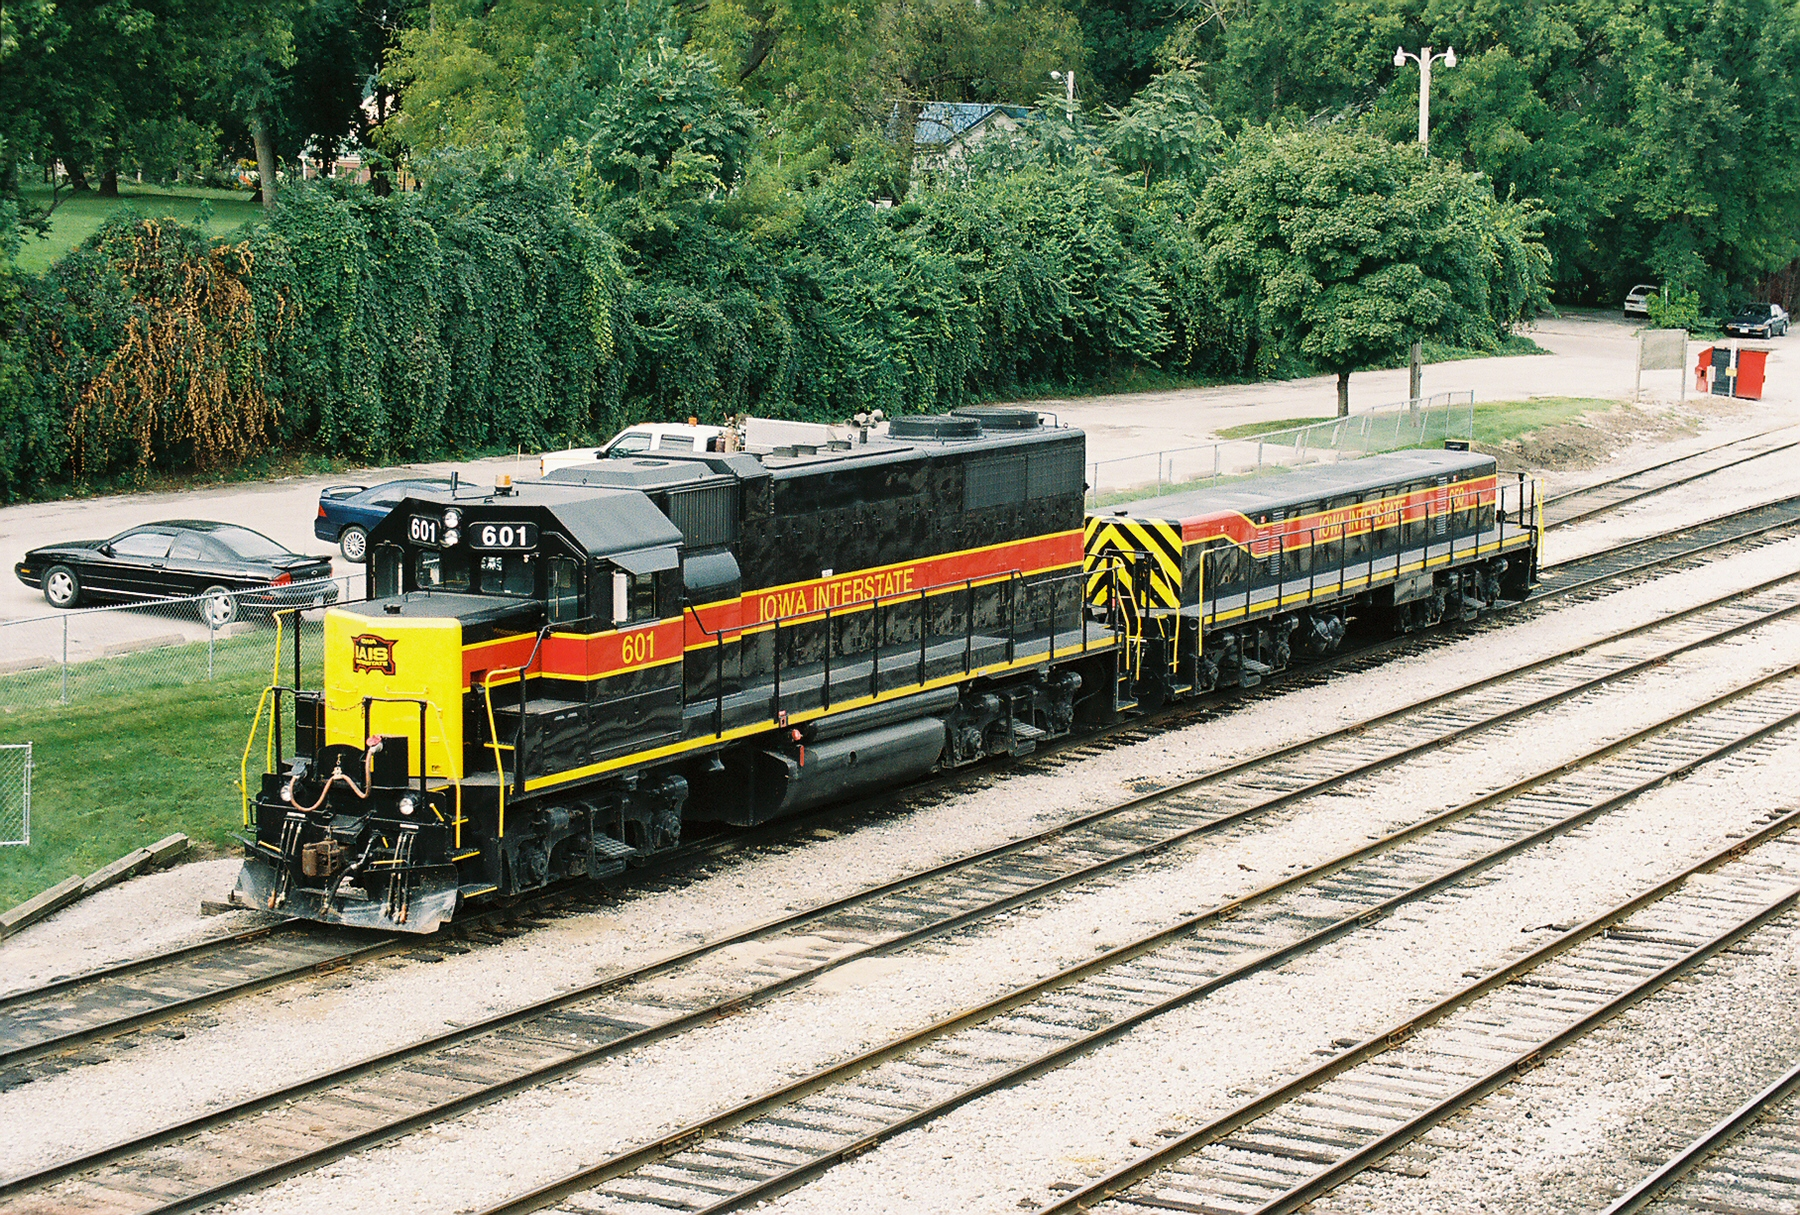 IAIS GP-38 601 with slug 650 resting in the Iowa City yard on 9-16-2007